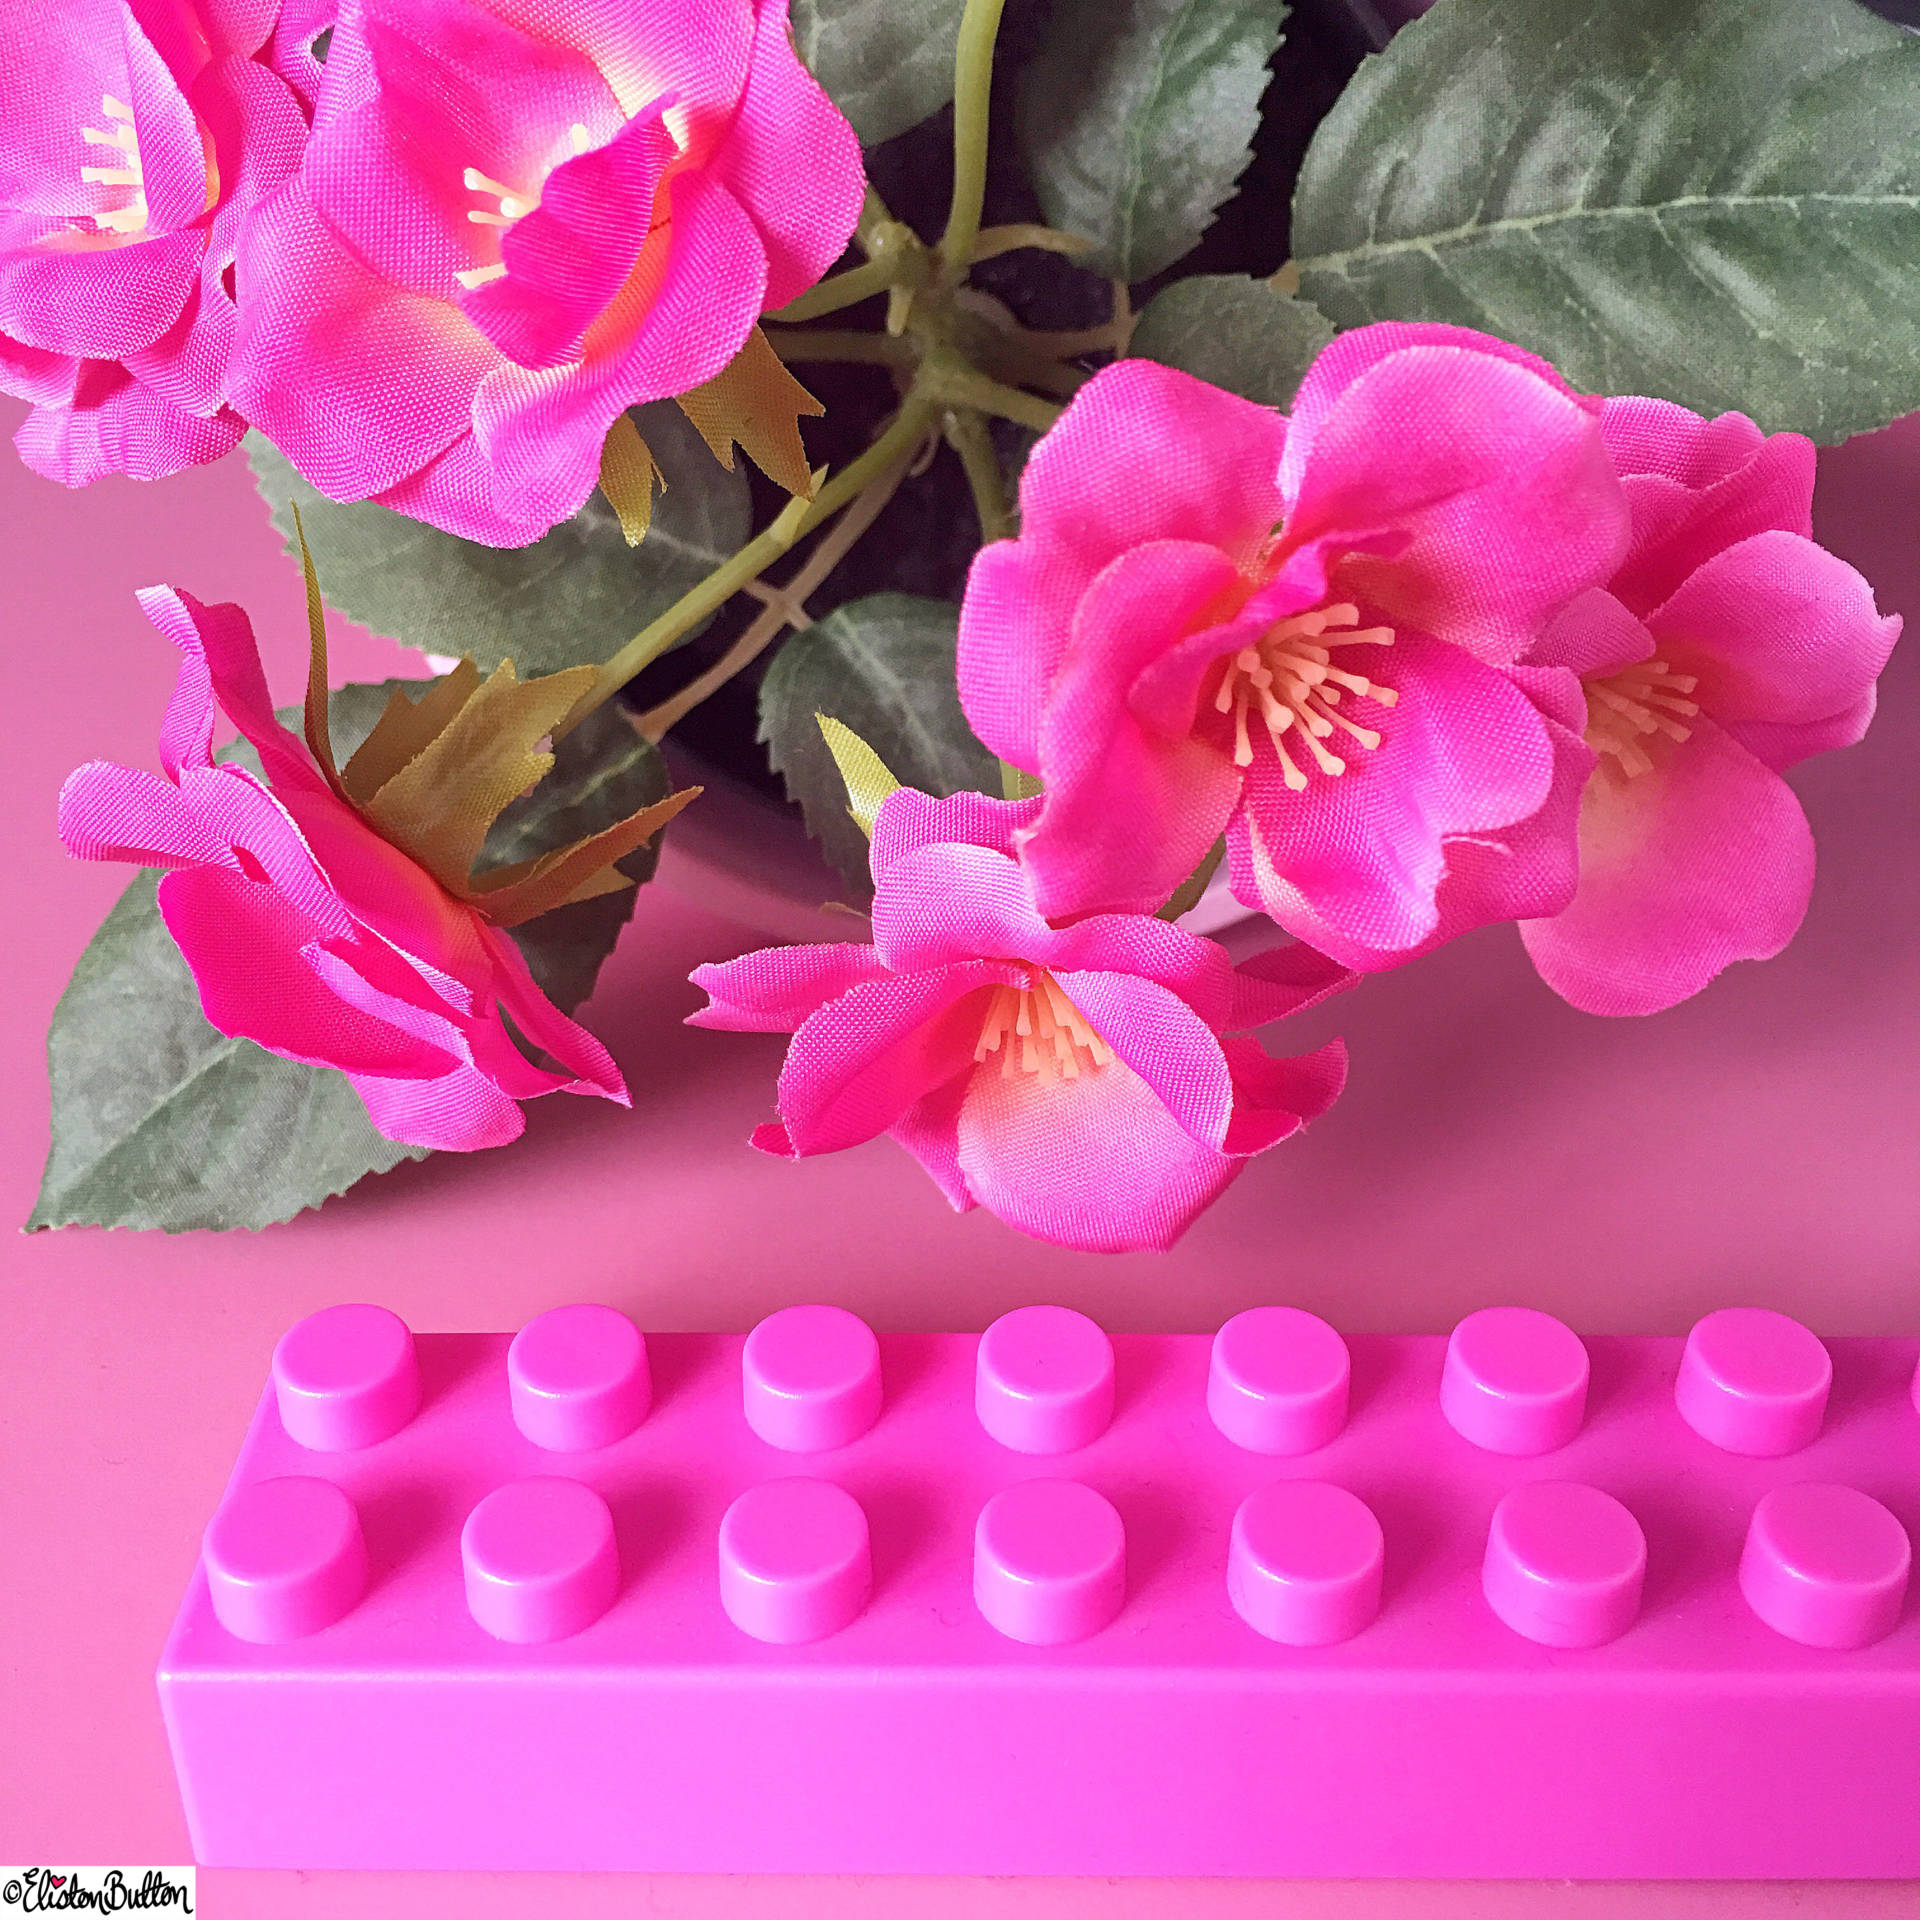 Day 29 - Man Made - Pink Lego and Flowers - Photo-a-Day – April 2016 at www.elistonbutton.com - Eliston Button - That Crafty Kid – Art, Design, Craft & Adventure.